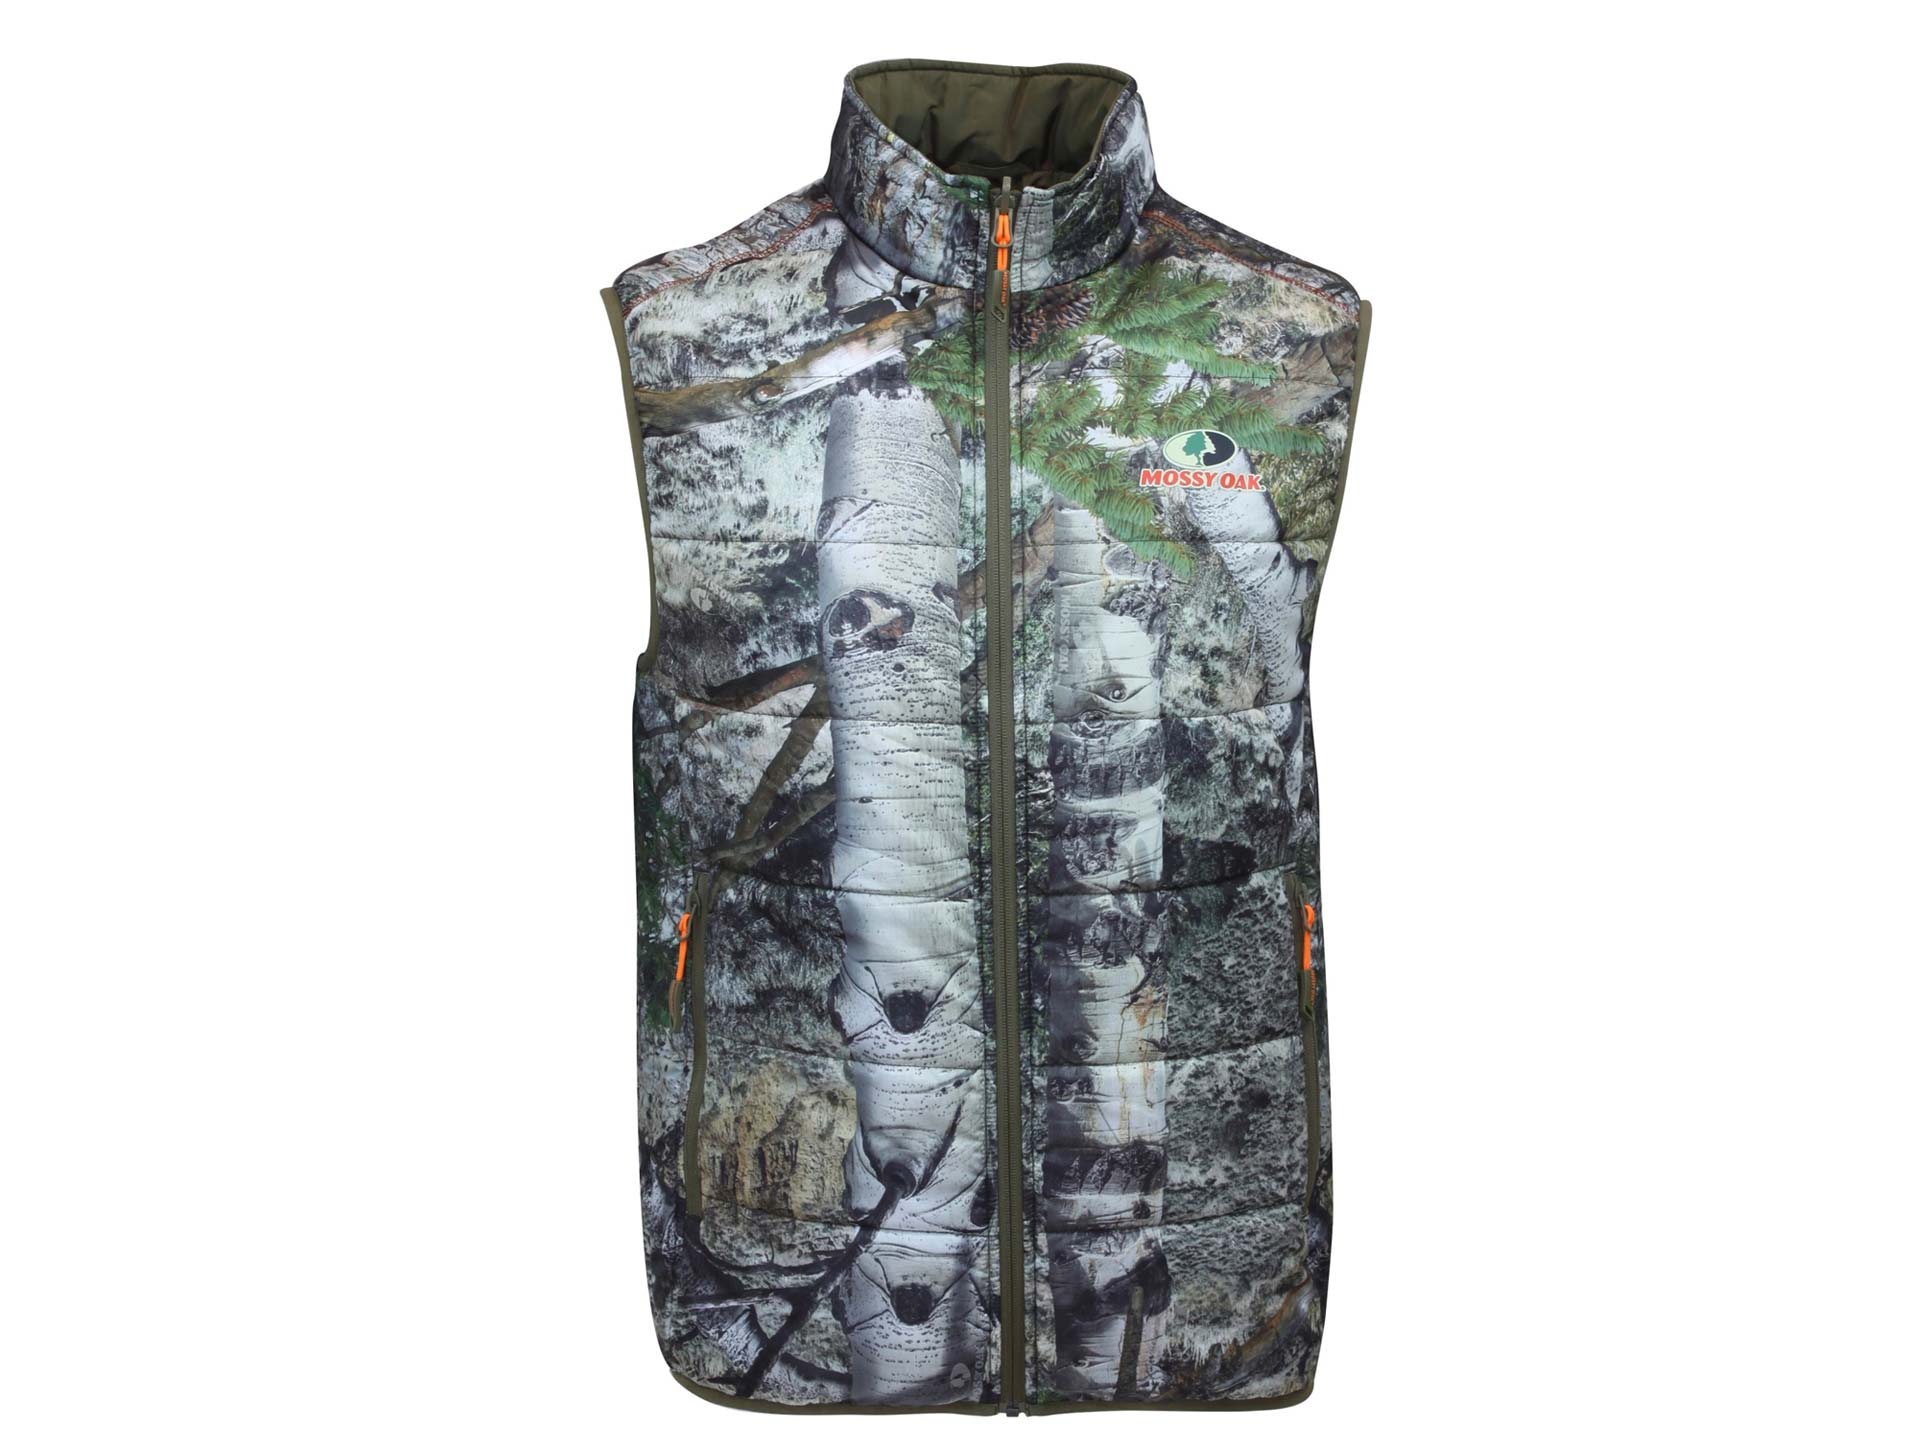 Camouflaged vest from Mossy Oak